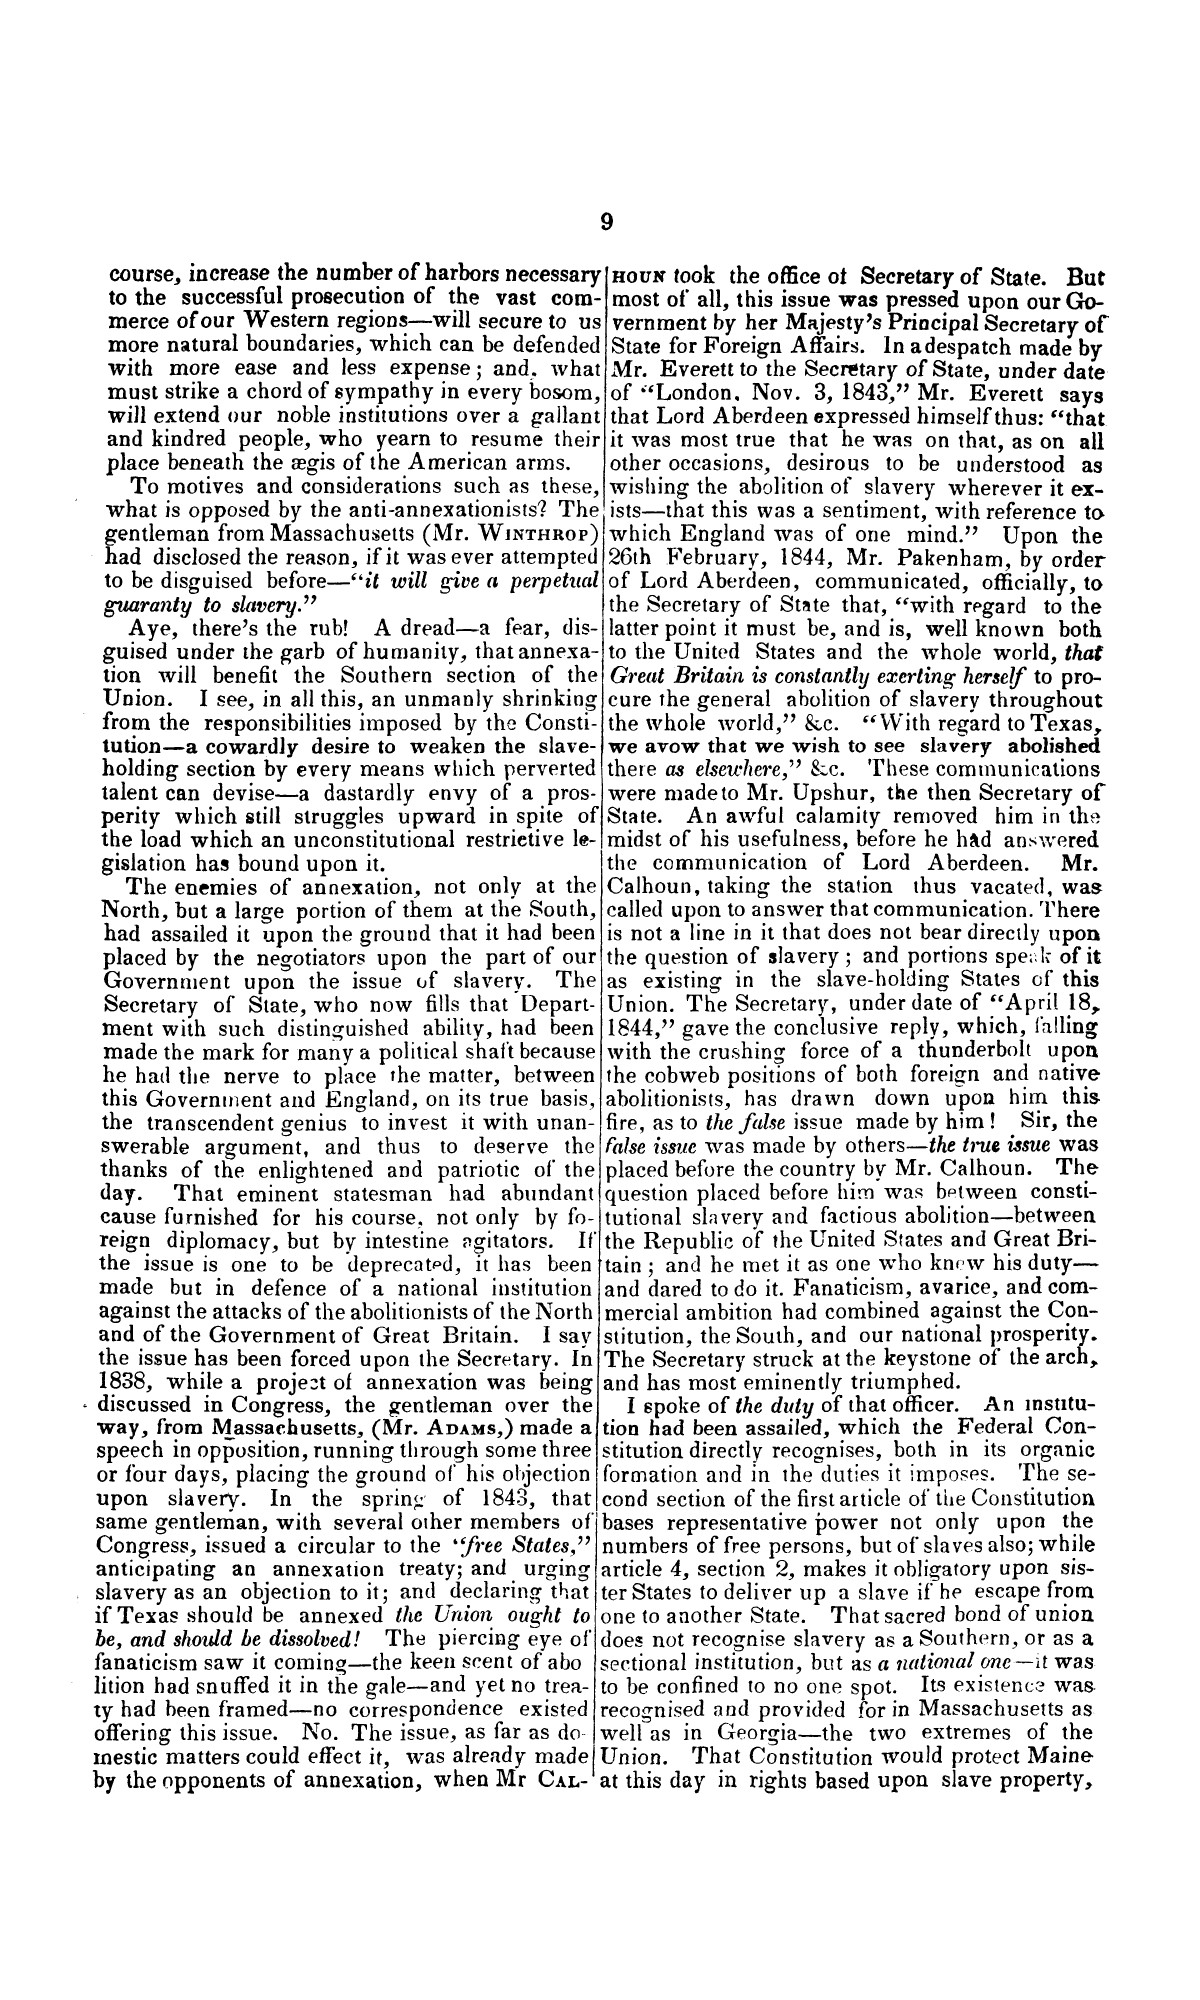 Speech of Hon. Wm. Lowndes Yancey, of Alabama, on the annexation of Texas to the United States, delivered in the House of Representatives, Jan. 7, 1845.                                                                                                      [Sequence #]: 9 of 14